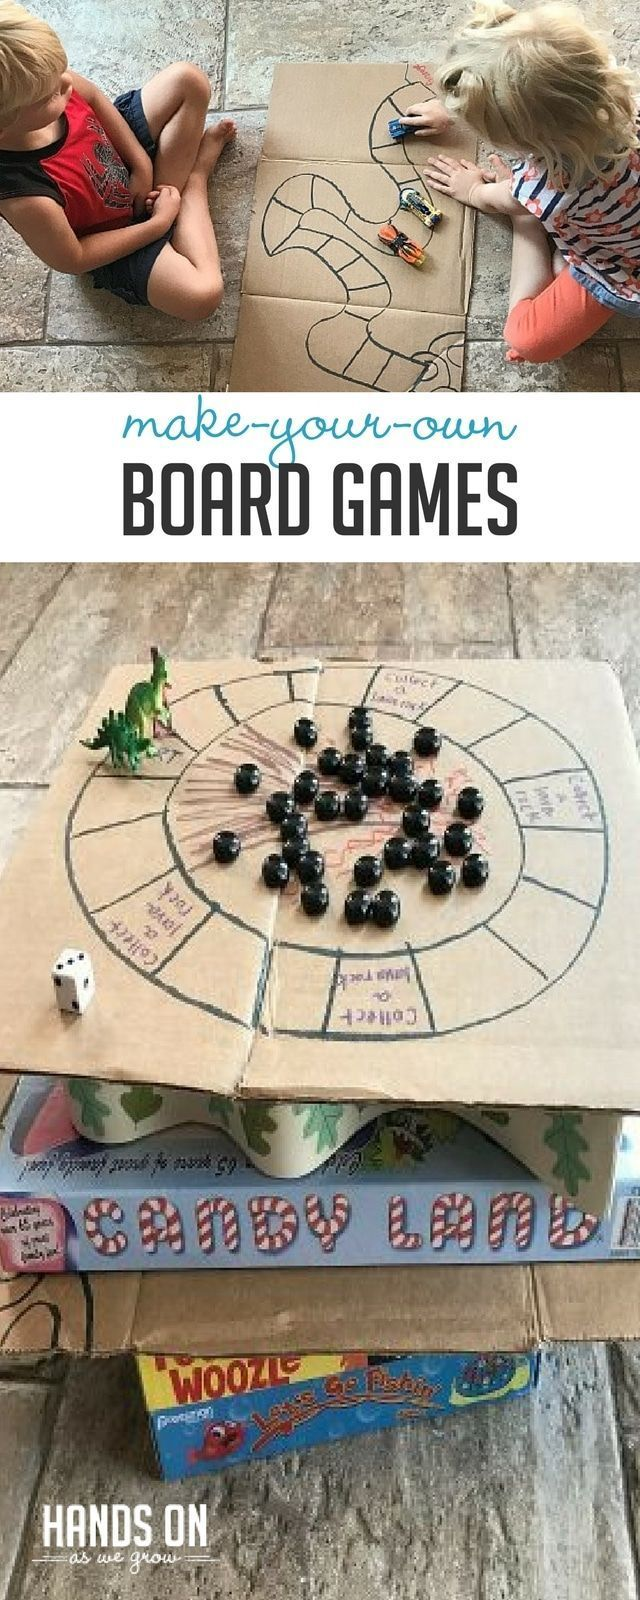 Make Your Own Board Games For Kids | Making Memories, Simple Diy And Board